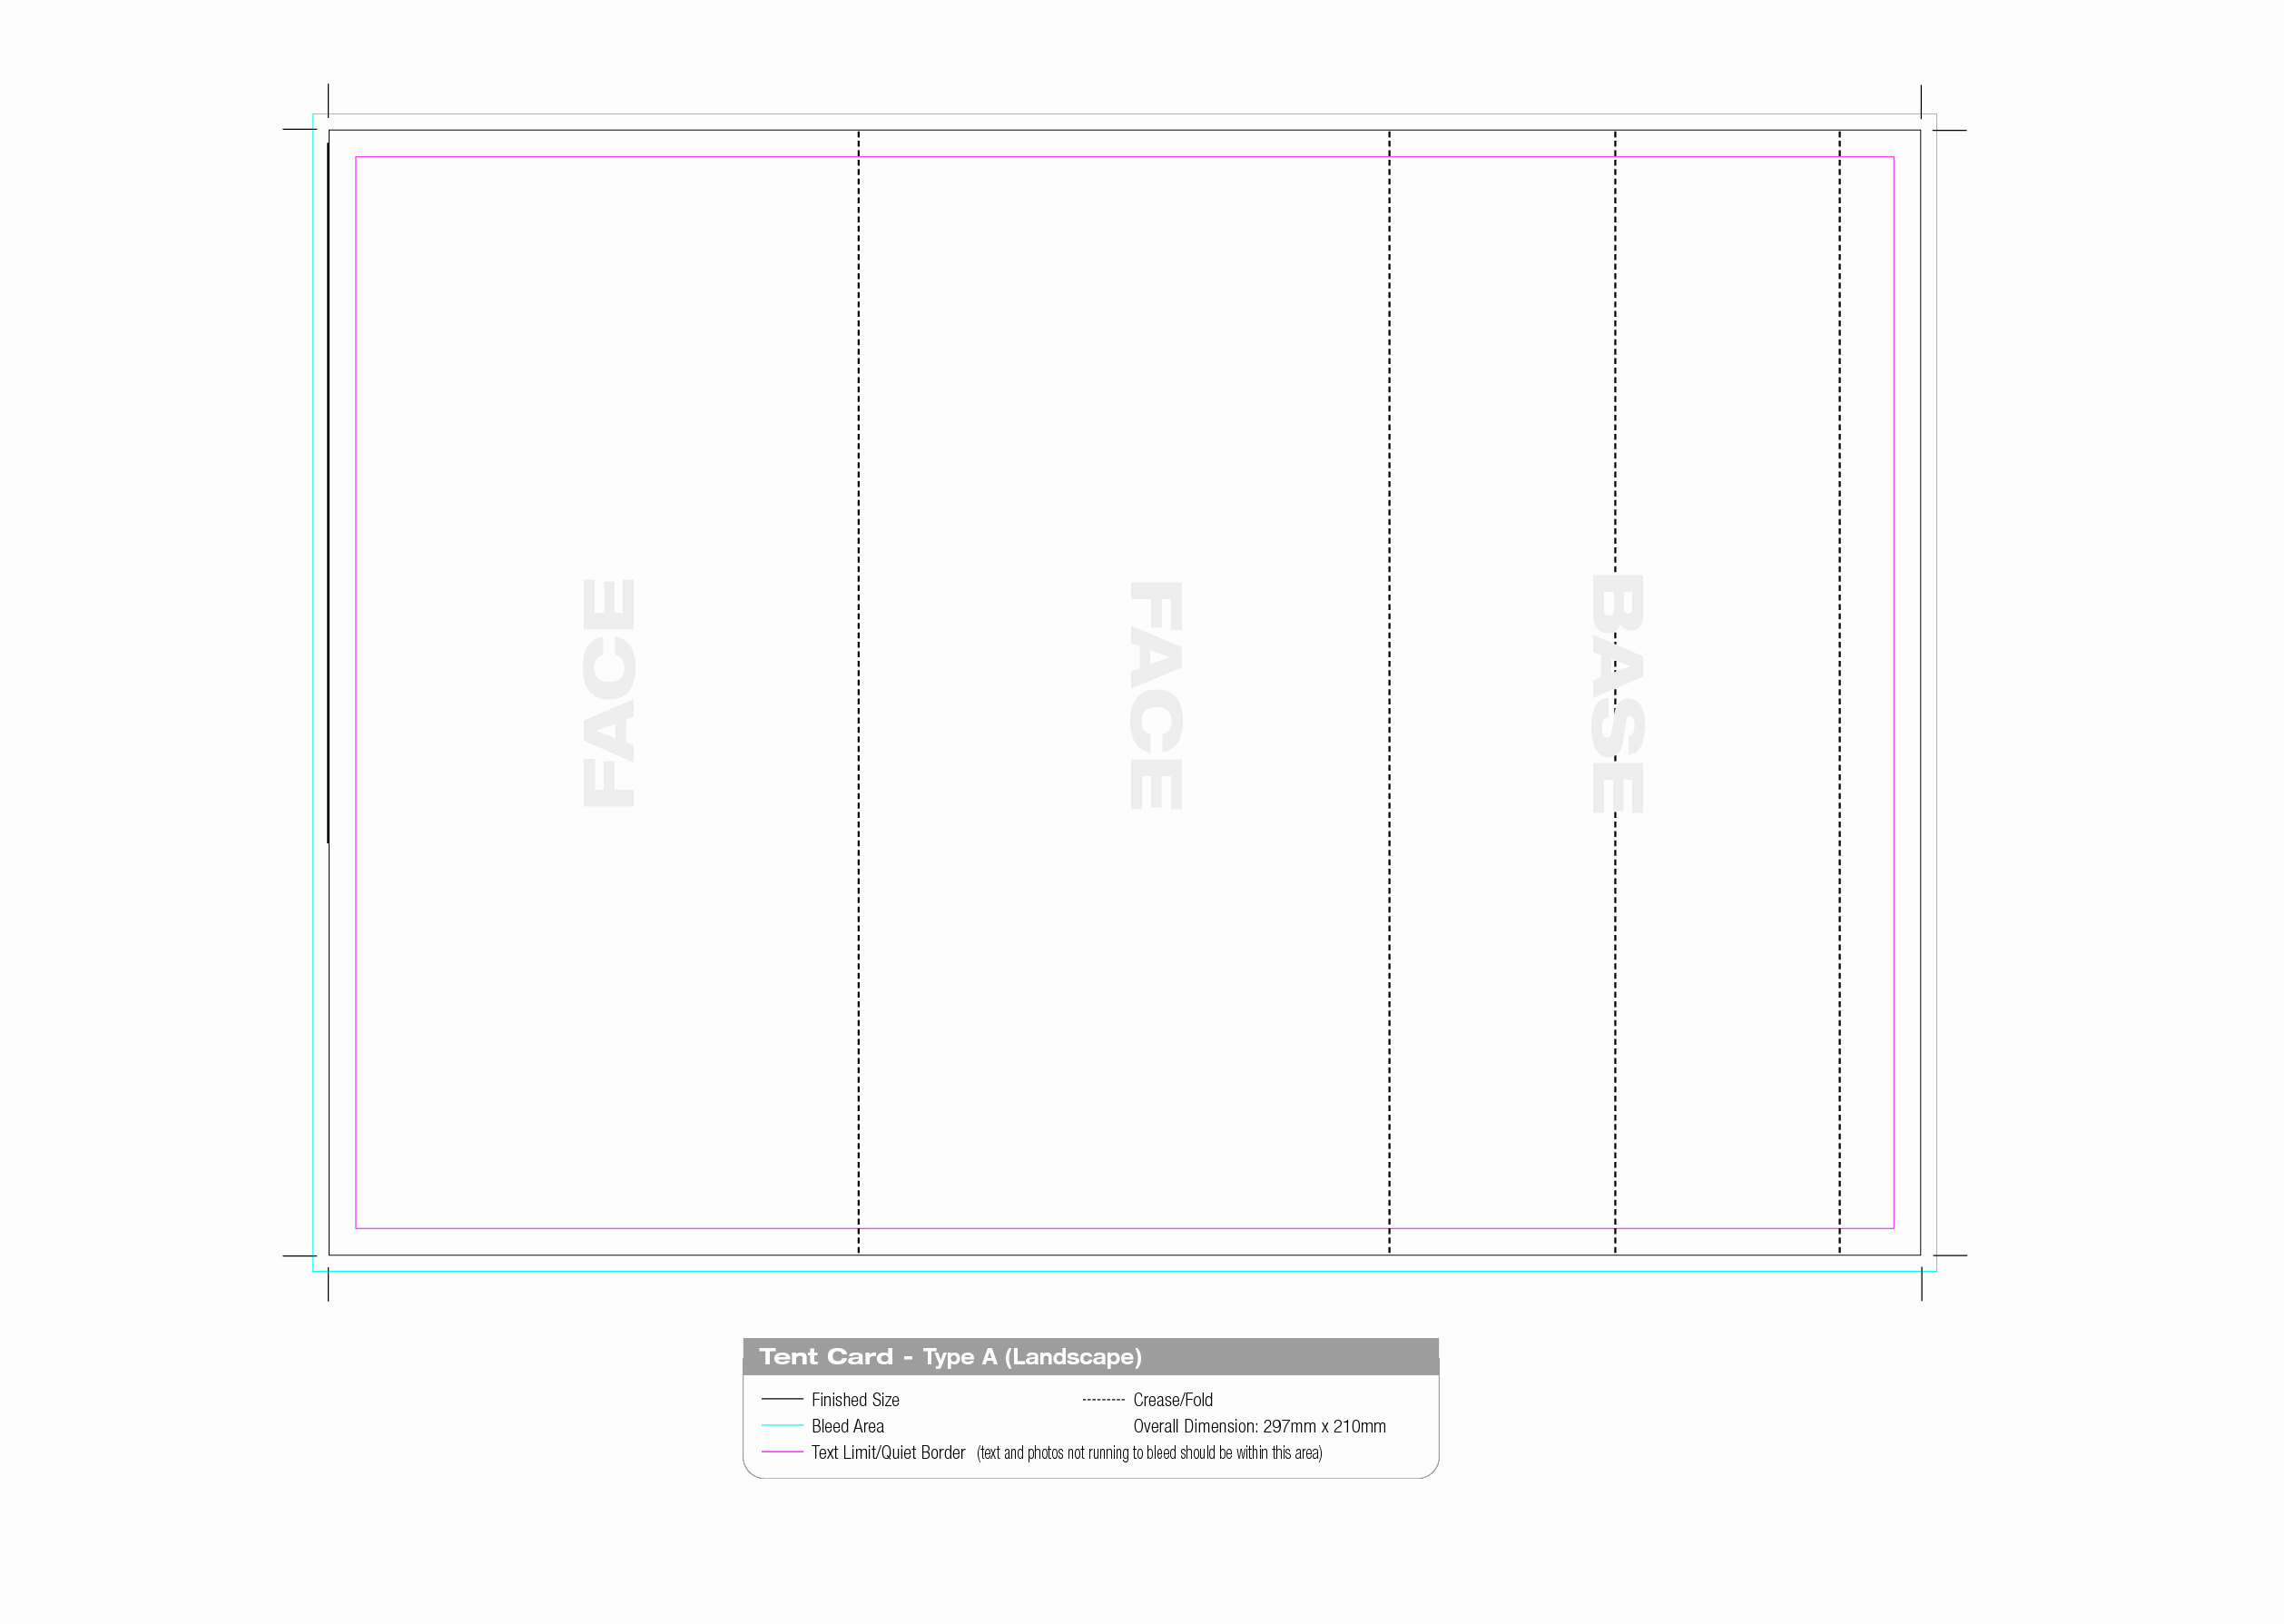 Free Tent Card Template Elegant Tent Card Template